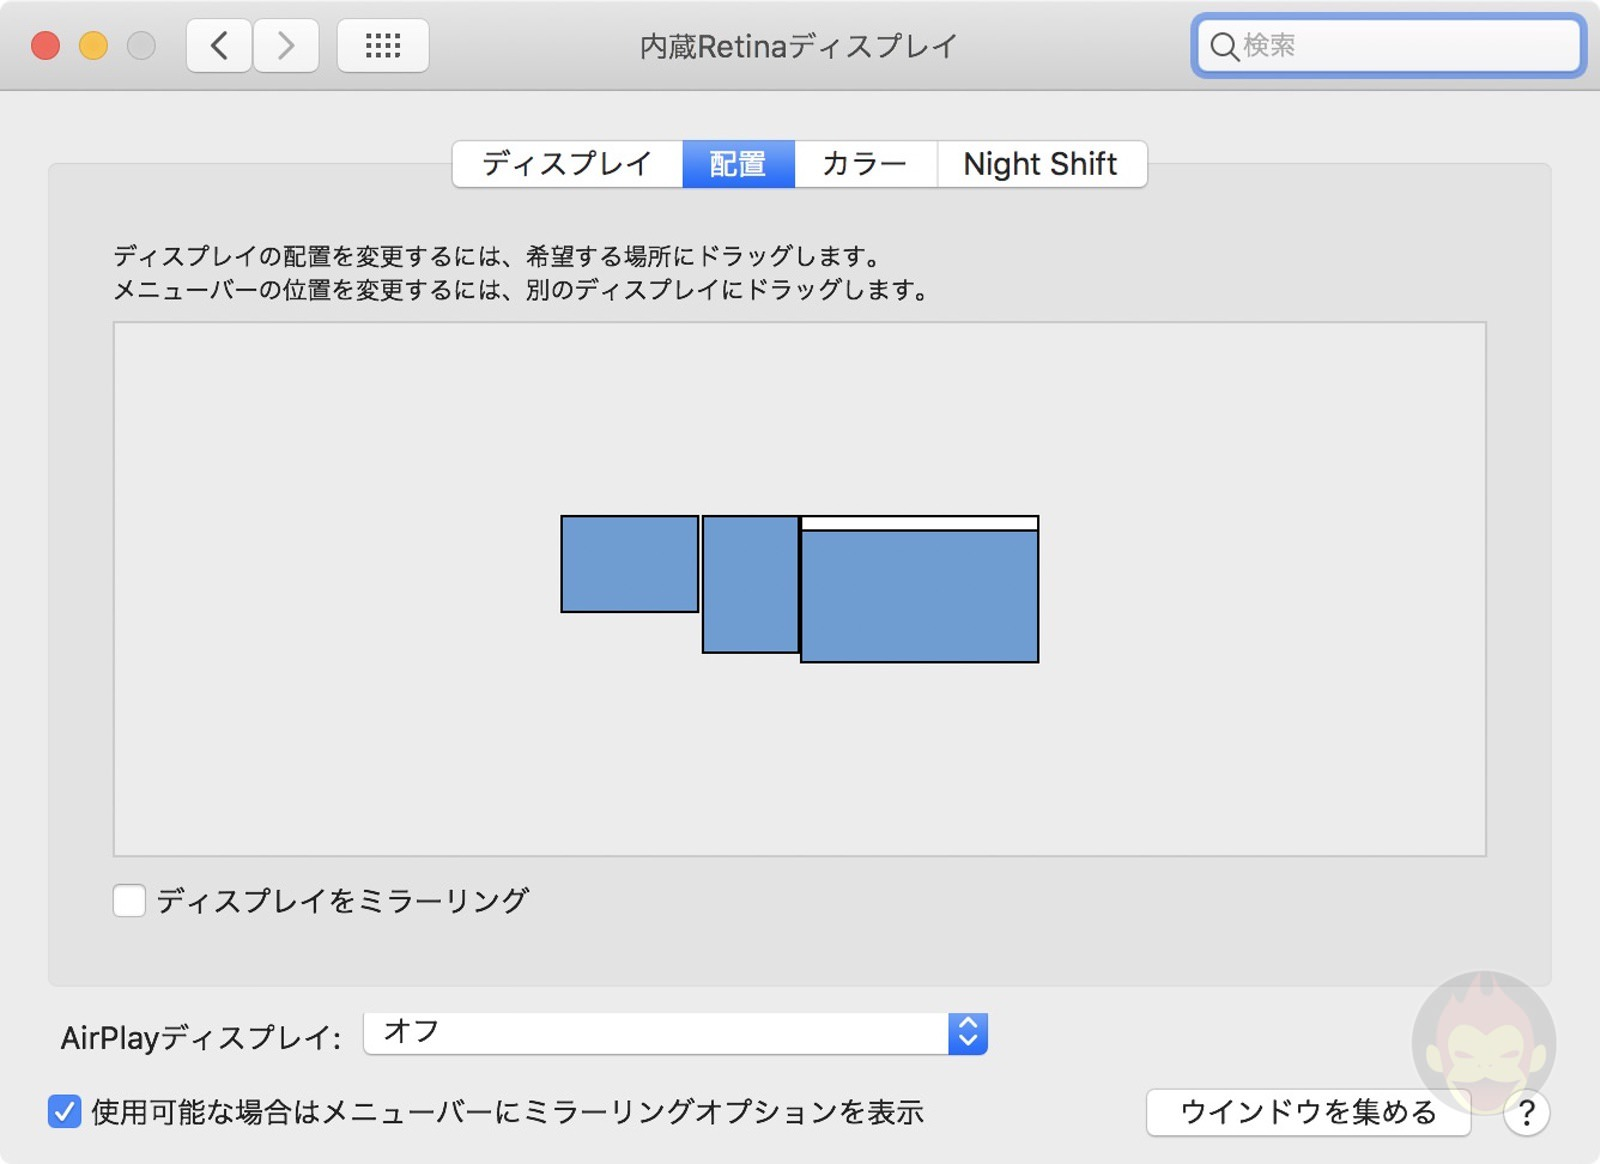 Duet-Luna-iPad-Display-for-mac-02.jpg